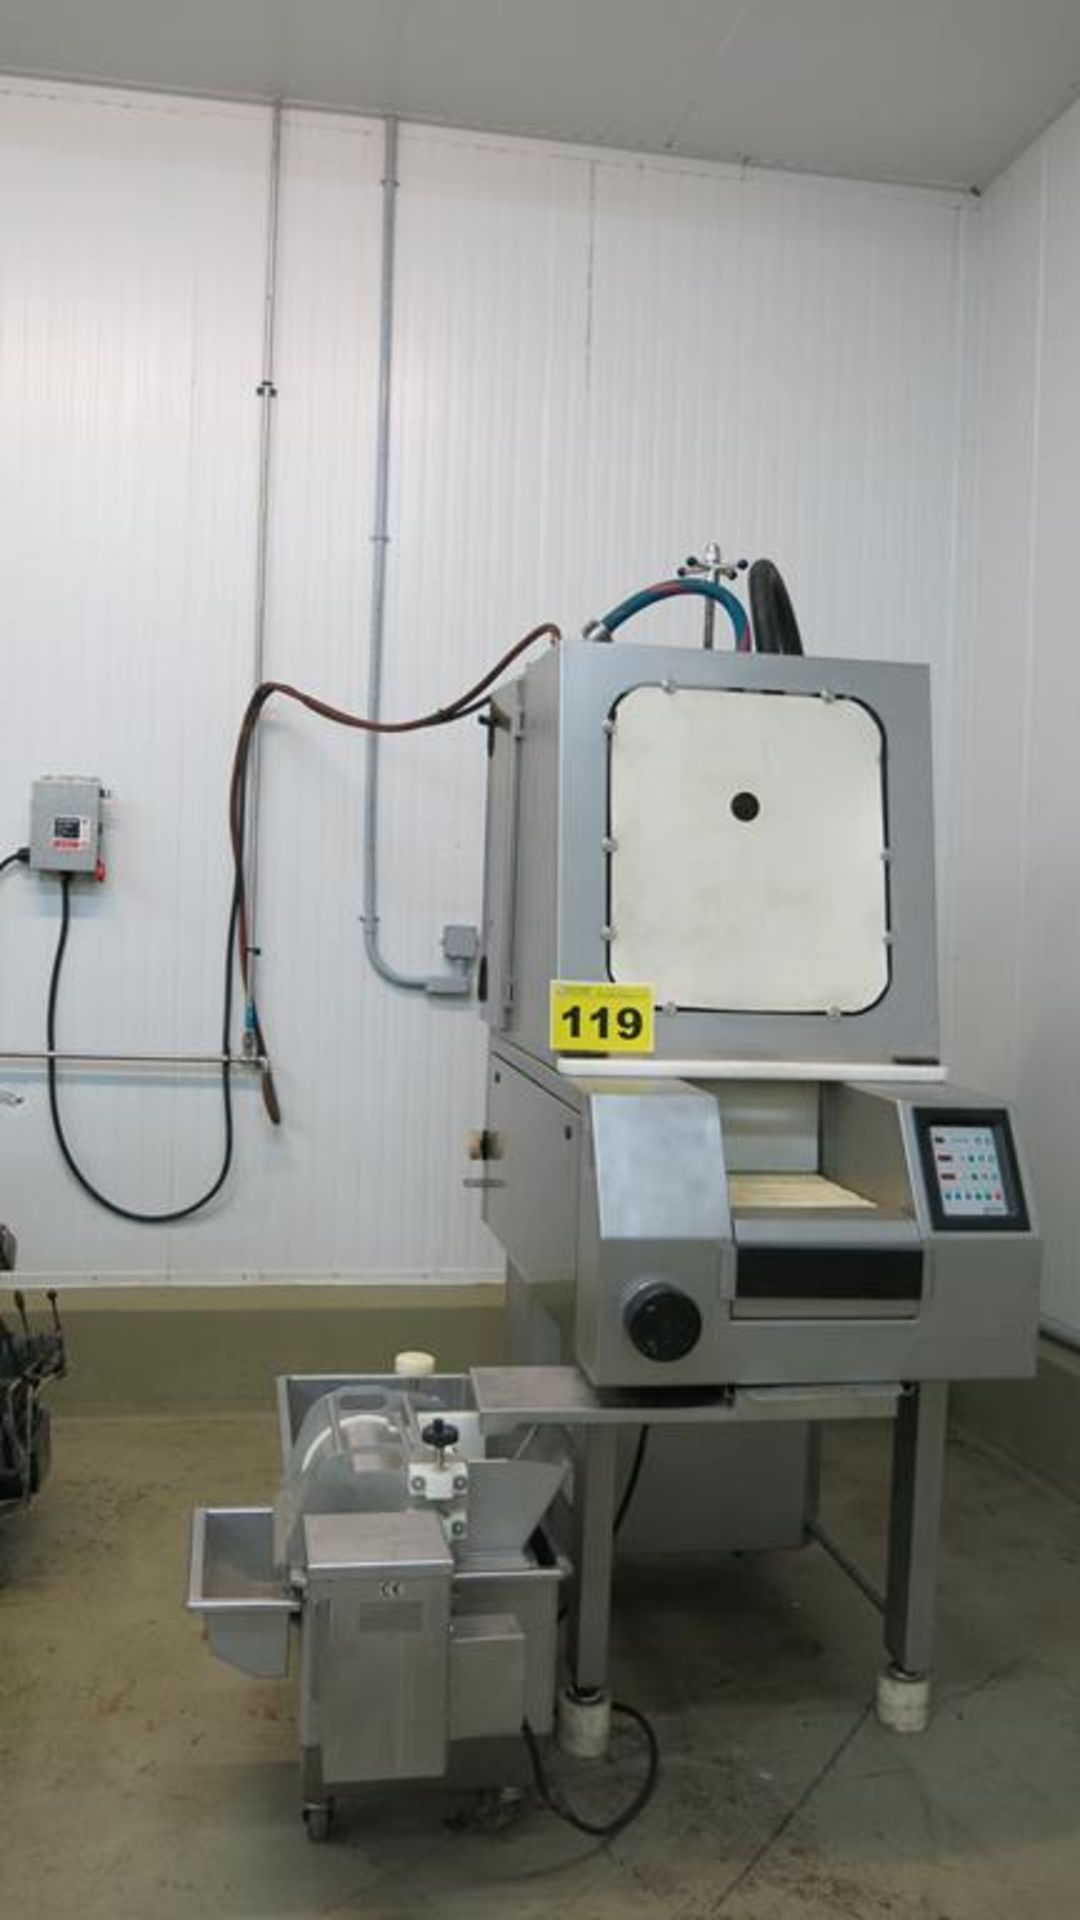 Lot 119 - GUNTHER, PI 58 / 99M, STAINLESS STEEL, 58 NEEDLE, BRINE INJECTOR WITH 200L, BRINE TANK WITH PUMP,